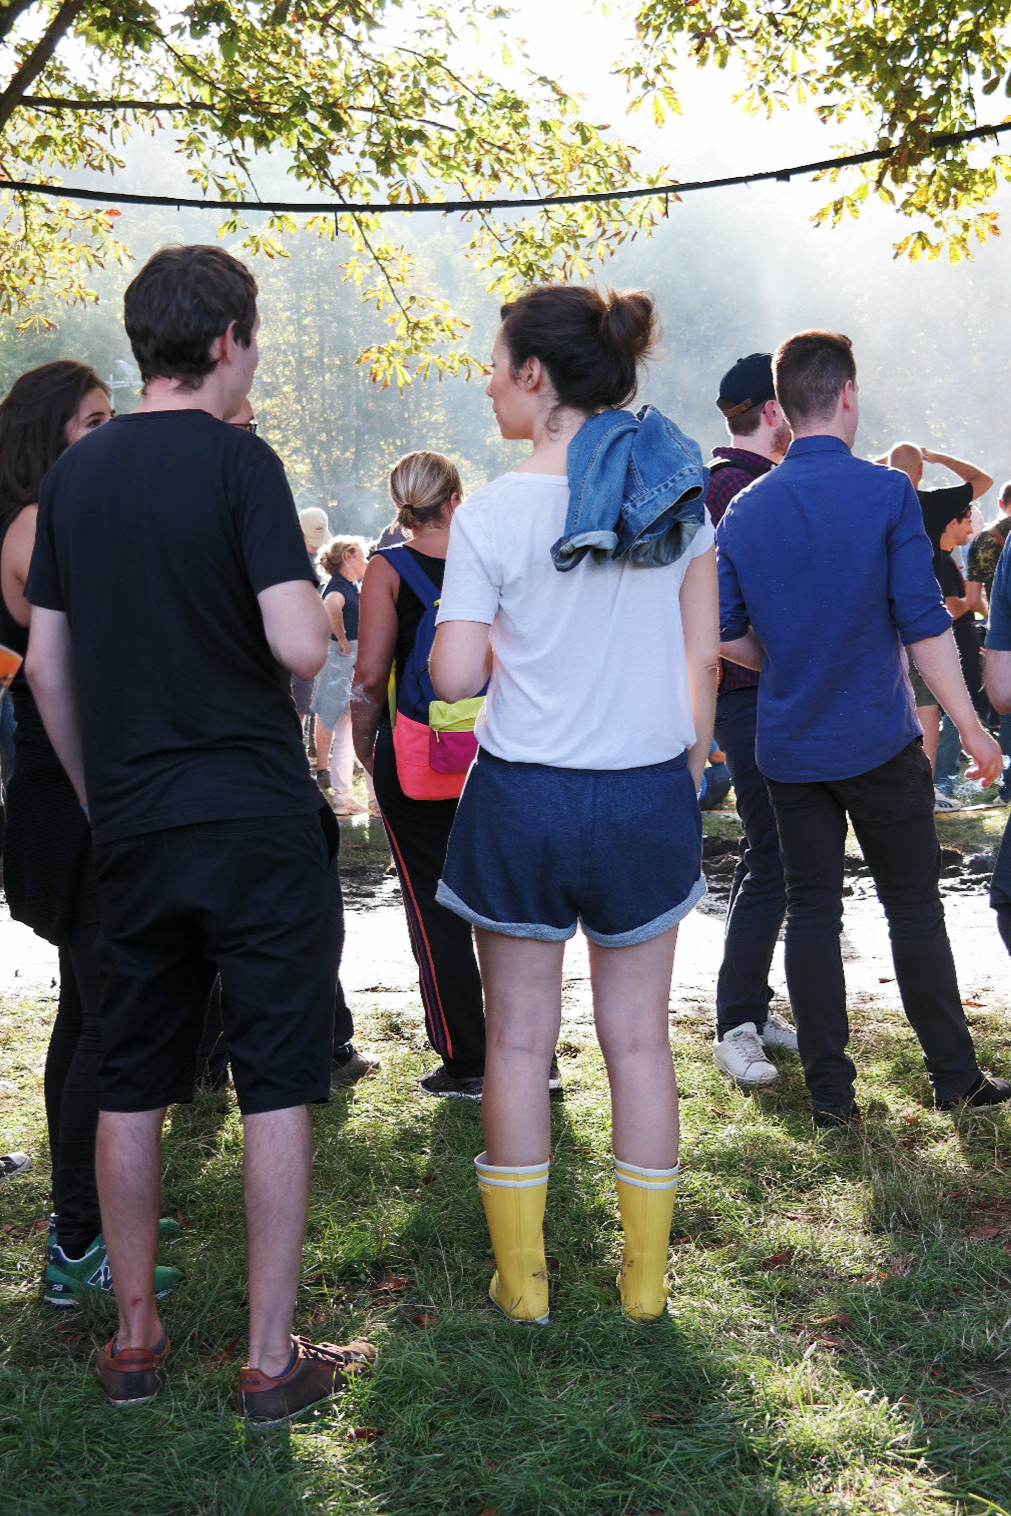 Rock-en-Seine-2015-festival-festivalière-et-bottes-en-caoutchouc-french-fashion-style-photo-by-united-states-of-paris-blog